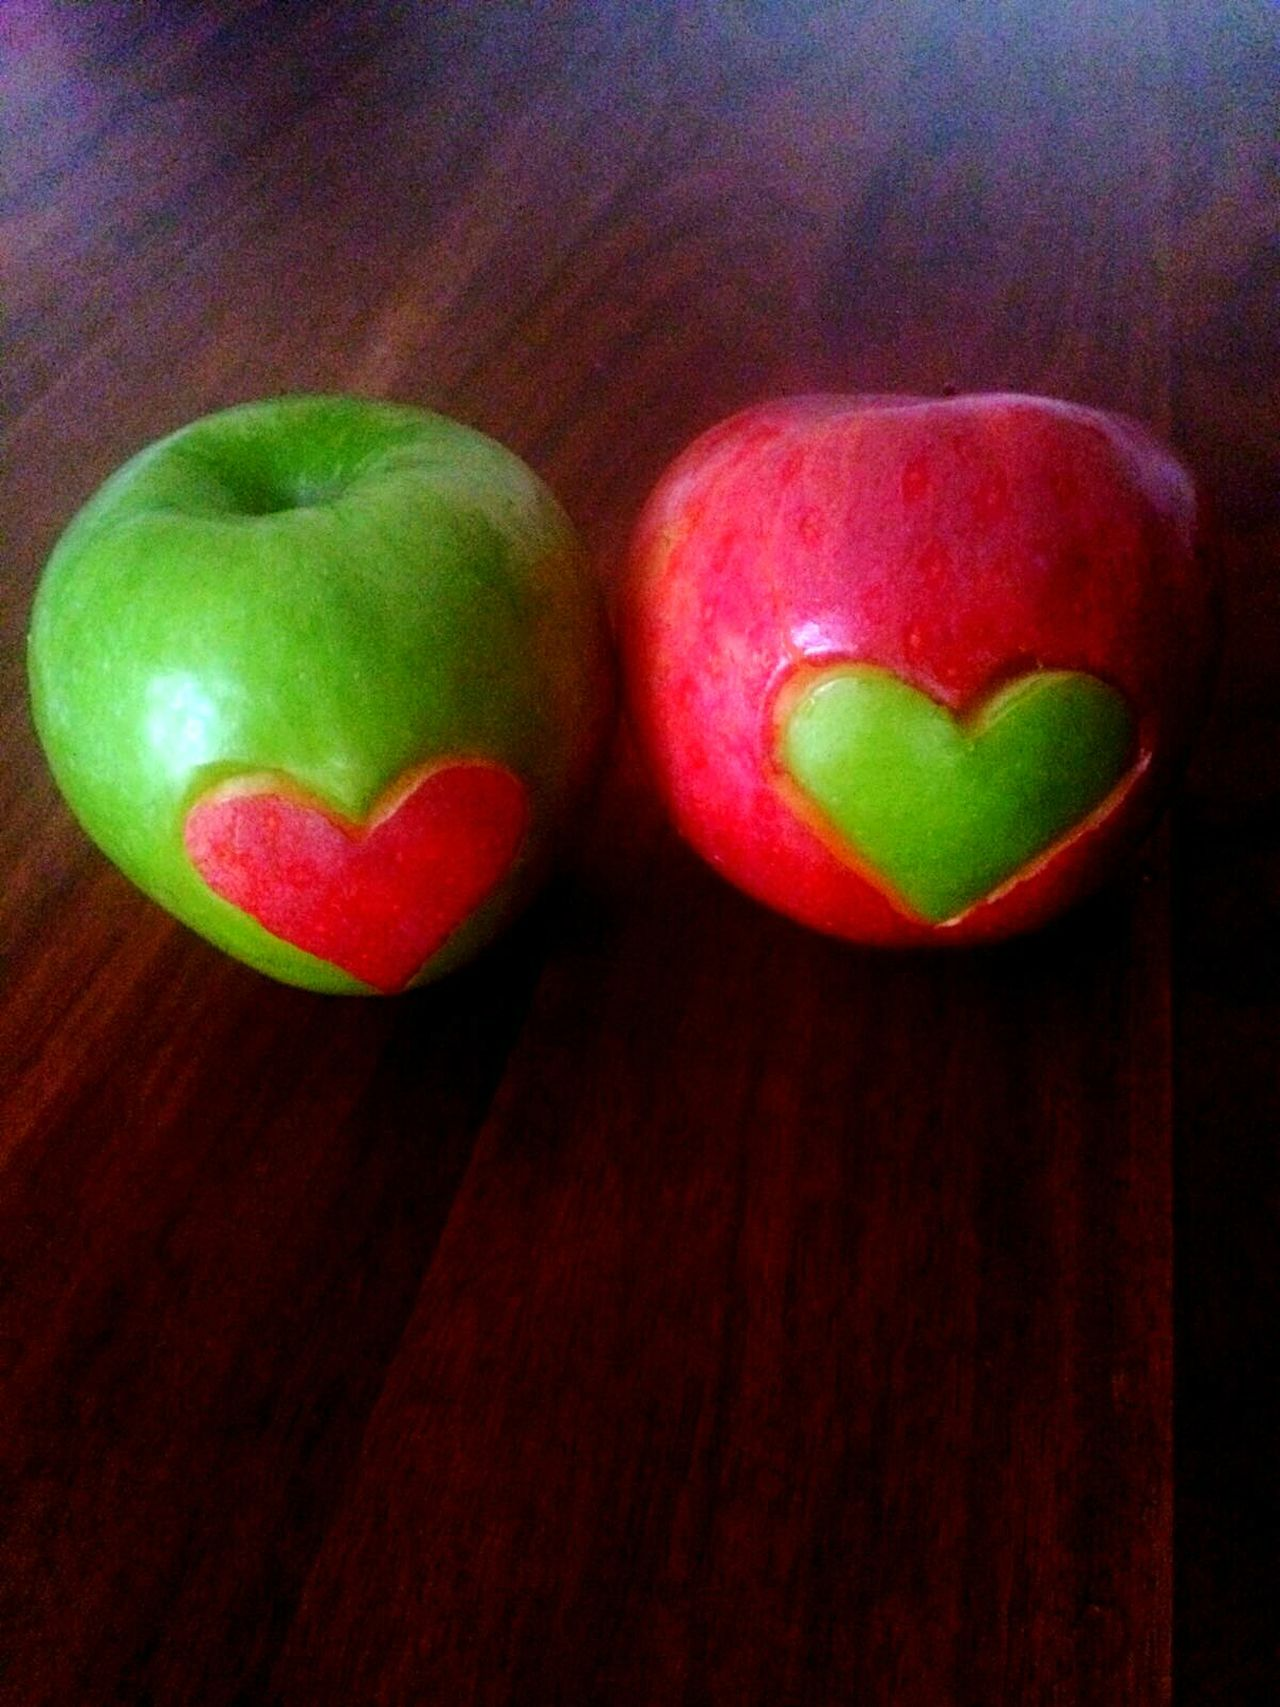 Apple Apples Heart Shape Heart ❤Healthy Lifestyle Food And Drink Healthy Food Healthy Eating EyeEmNewHere Hearts Red Indoors  Multi Colored No People Close-up Green Color Day Food Love Love ♥